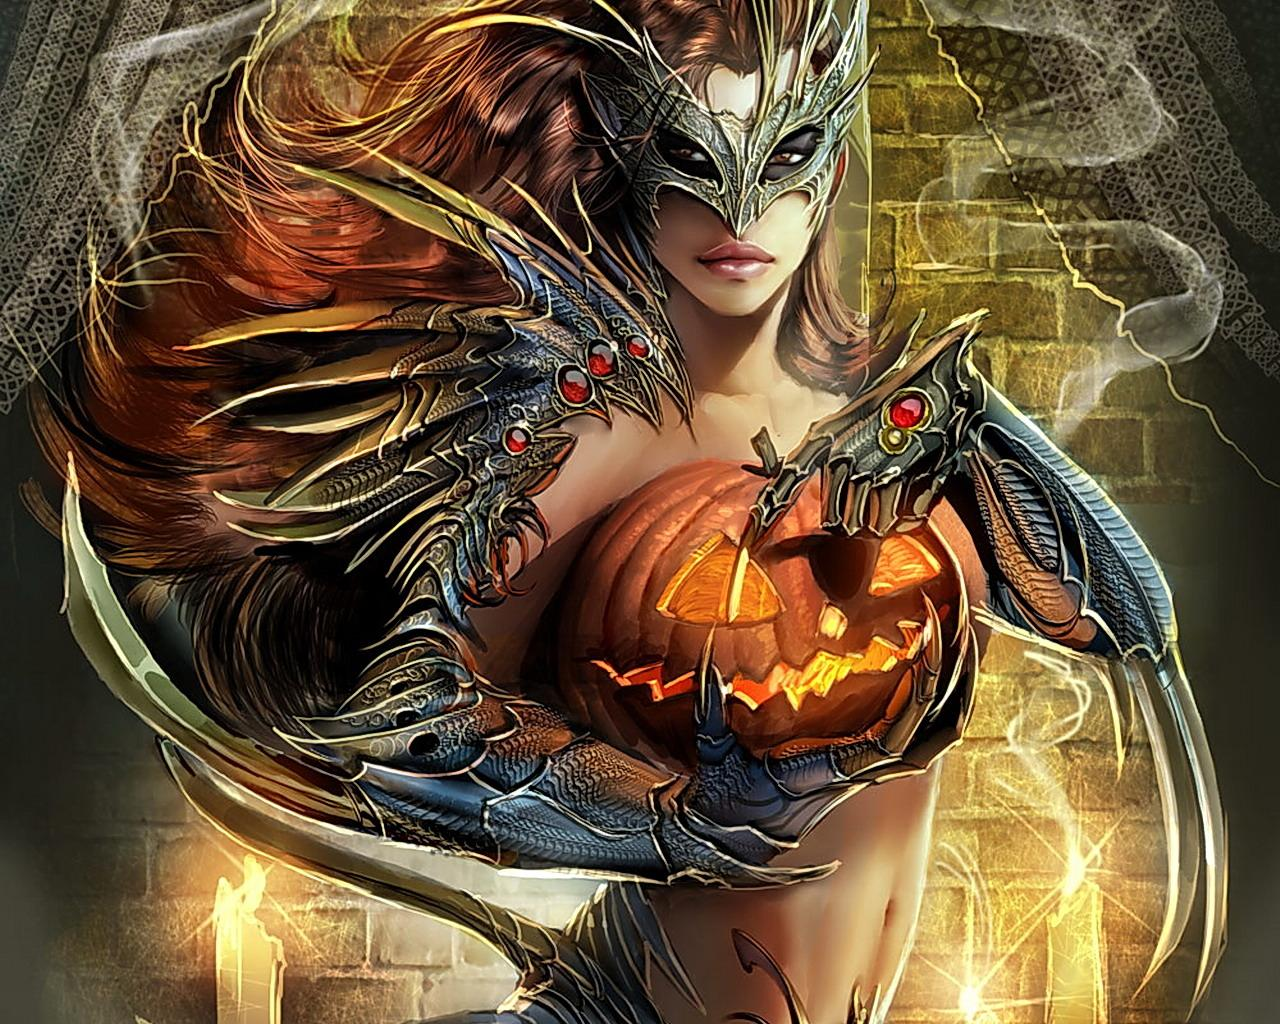 Witchblade Comics at 640 x 1136 iPhone 5 size wallpapers HD quality